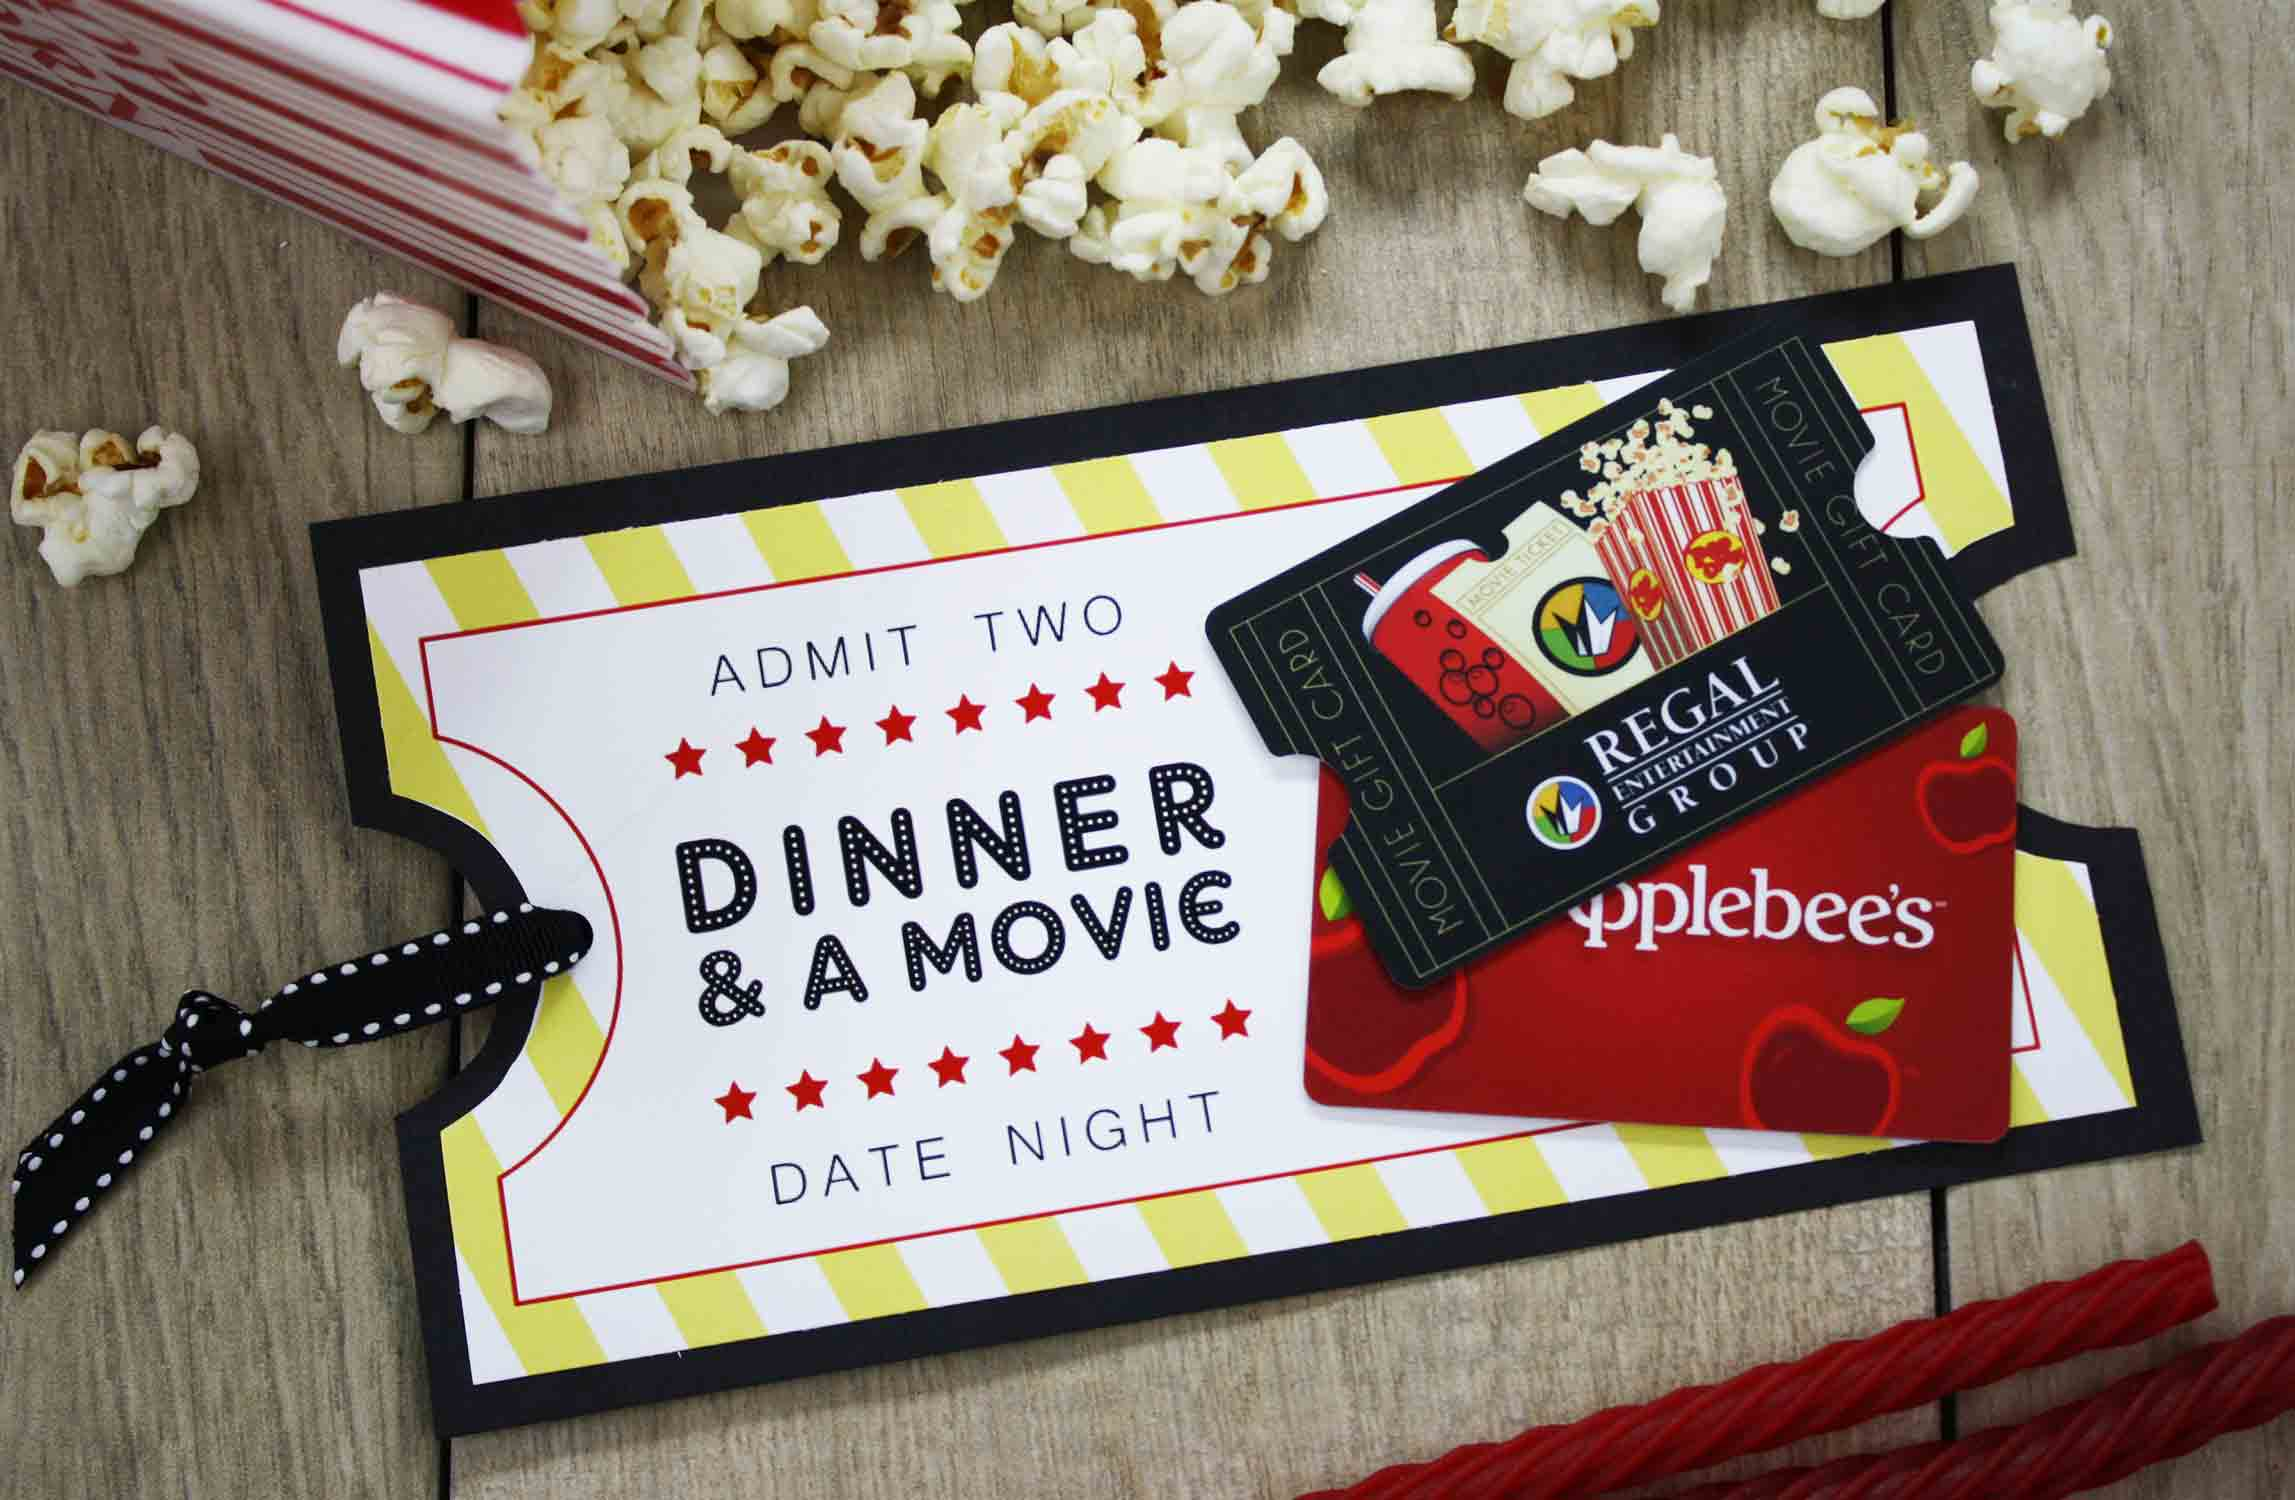 Free printable give date night for a wedding gift gcg restaurant and a movie gift card solutioingenieria Image collections